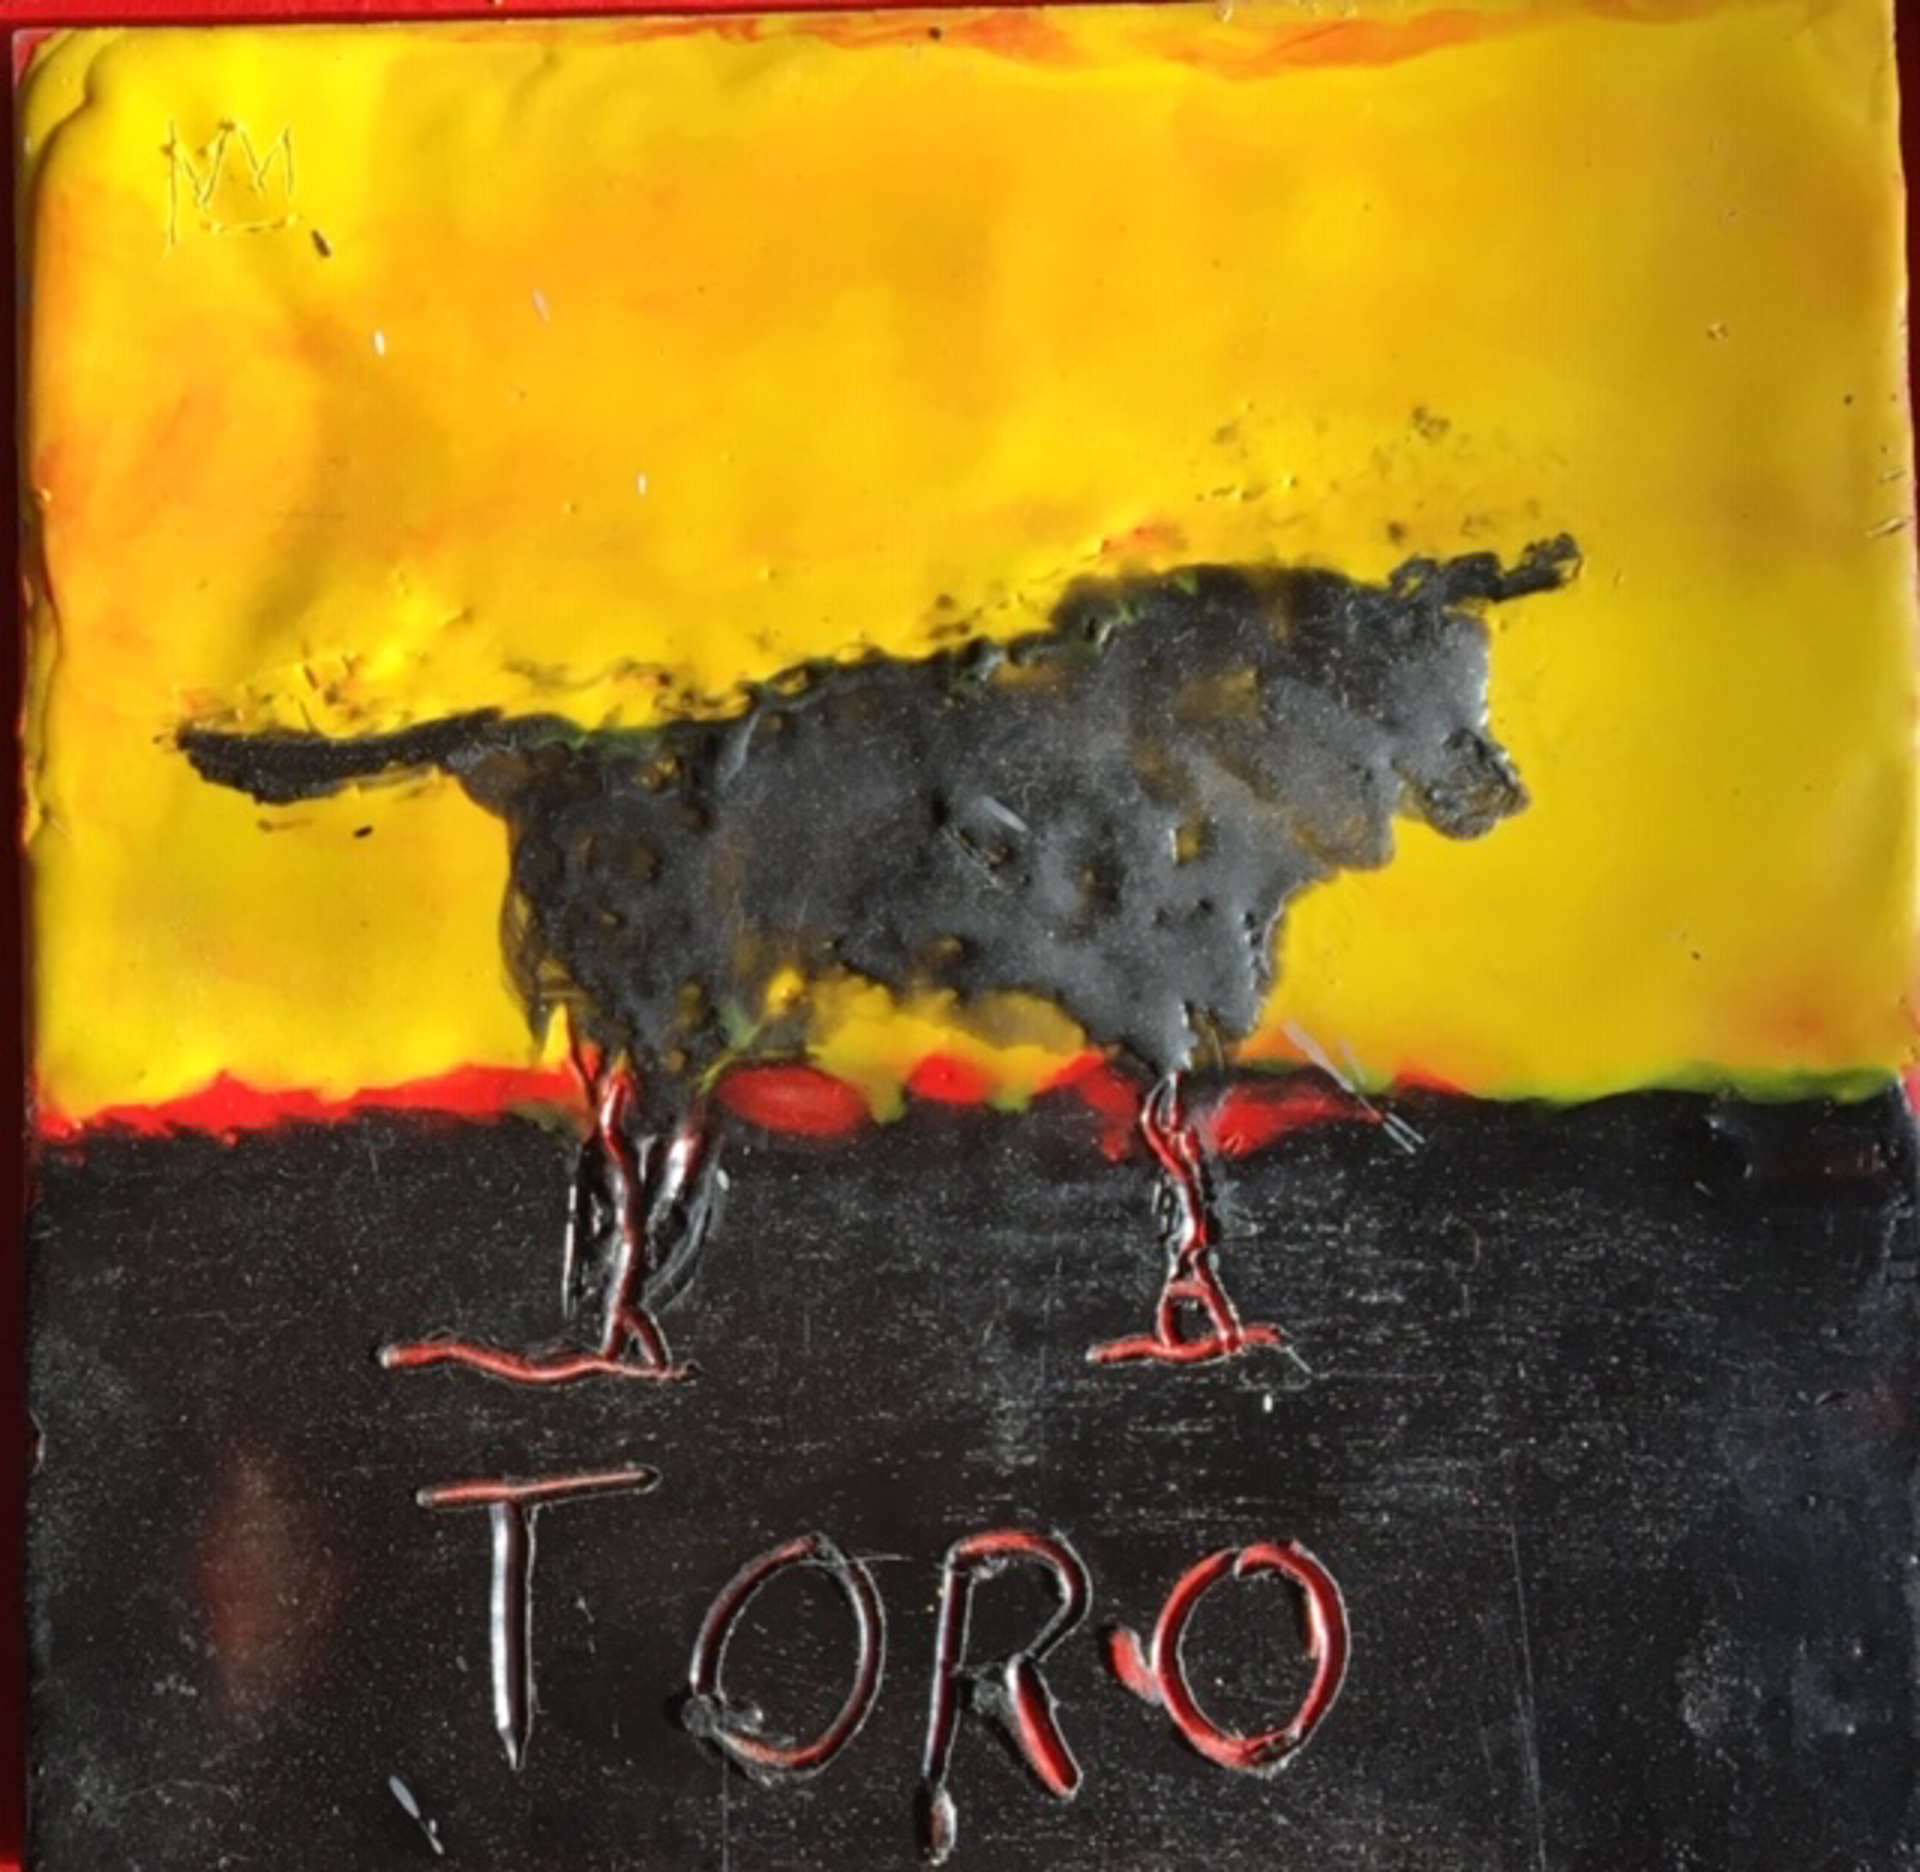 Toro by Michael Snodgrass